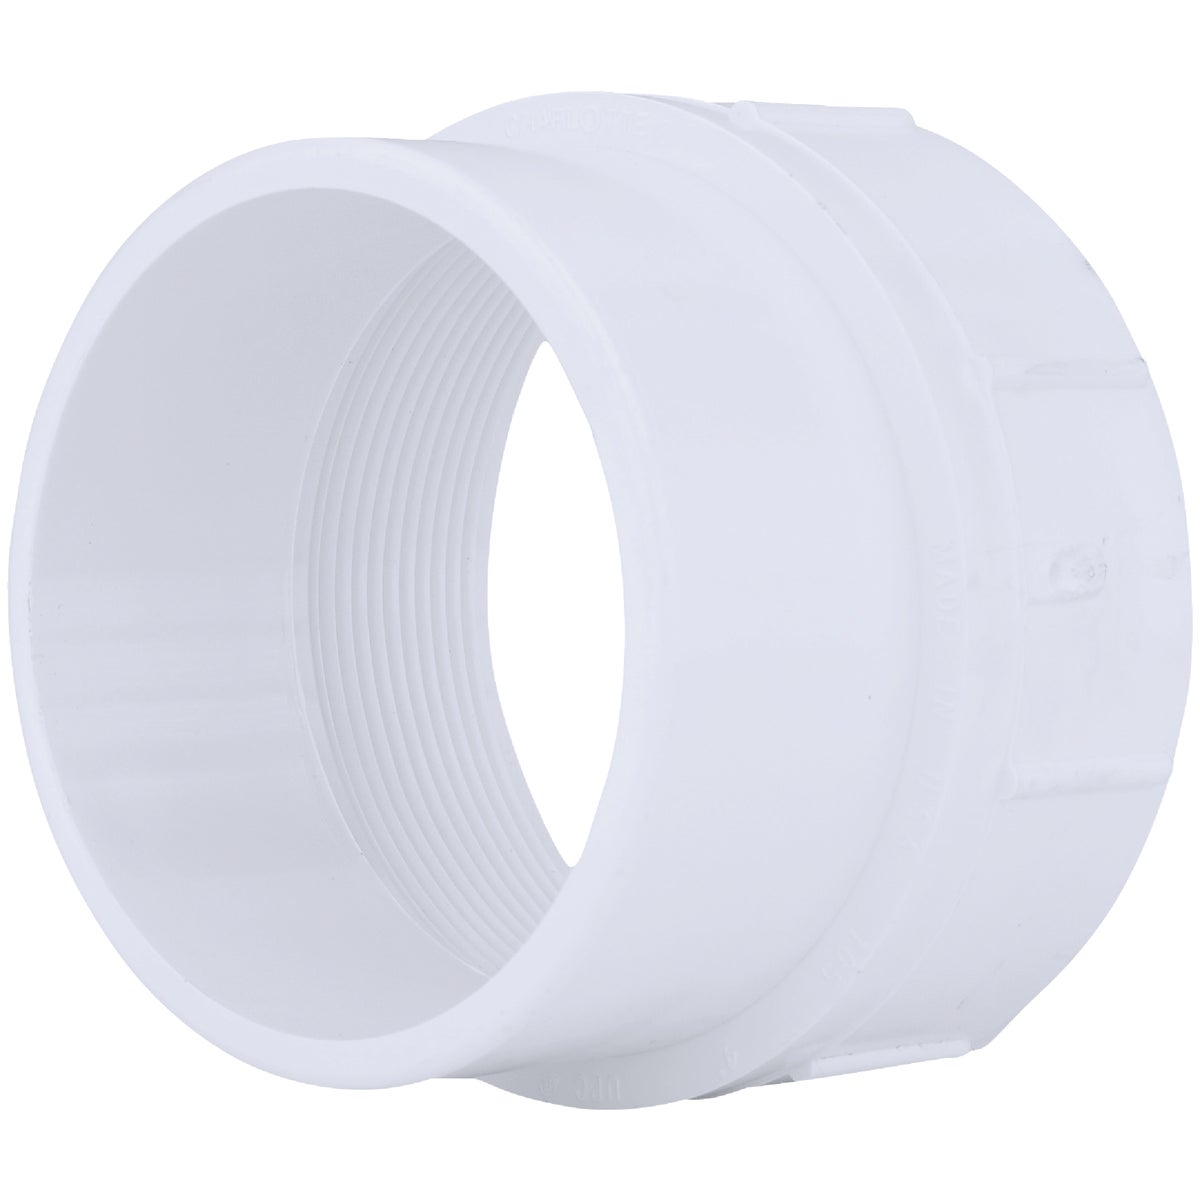 "4"" DWV CLEANOUT FITTING - 71639 by Genova Inc  Pvc Dwv"